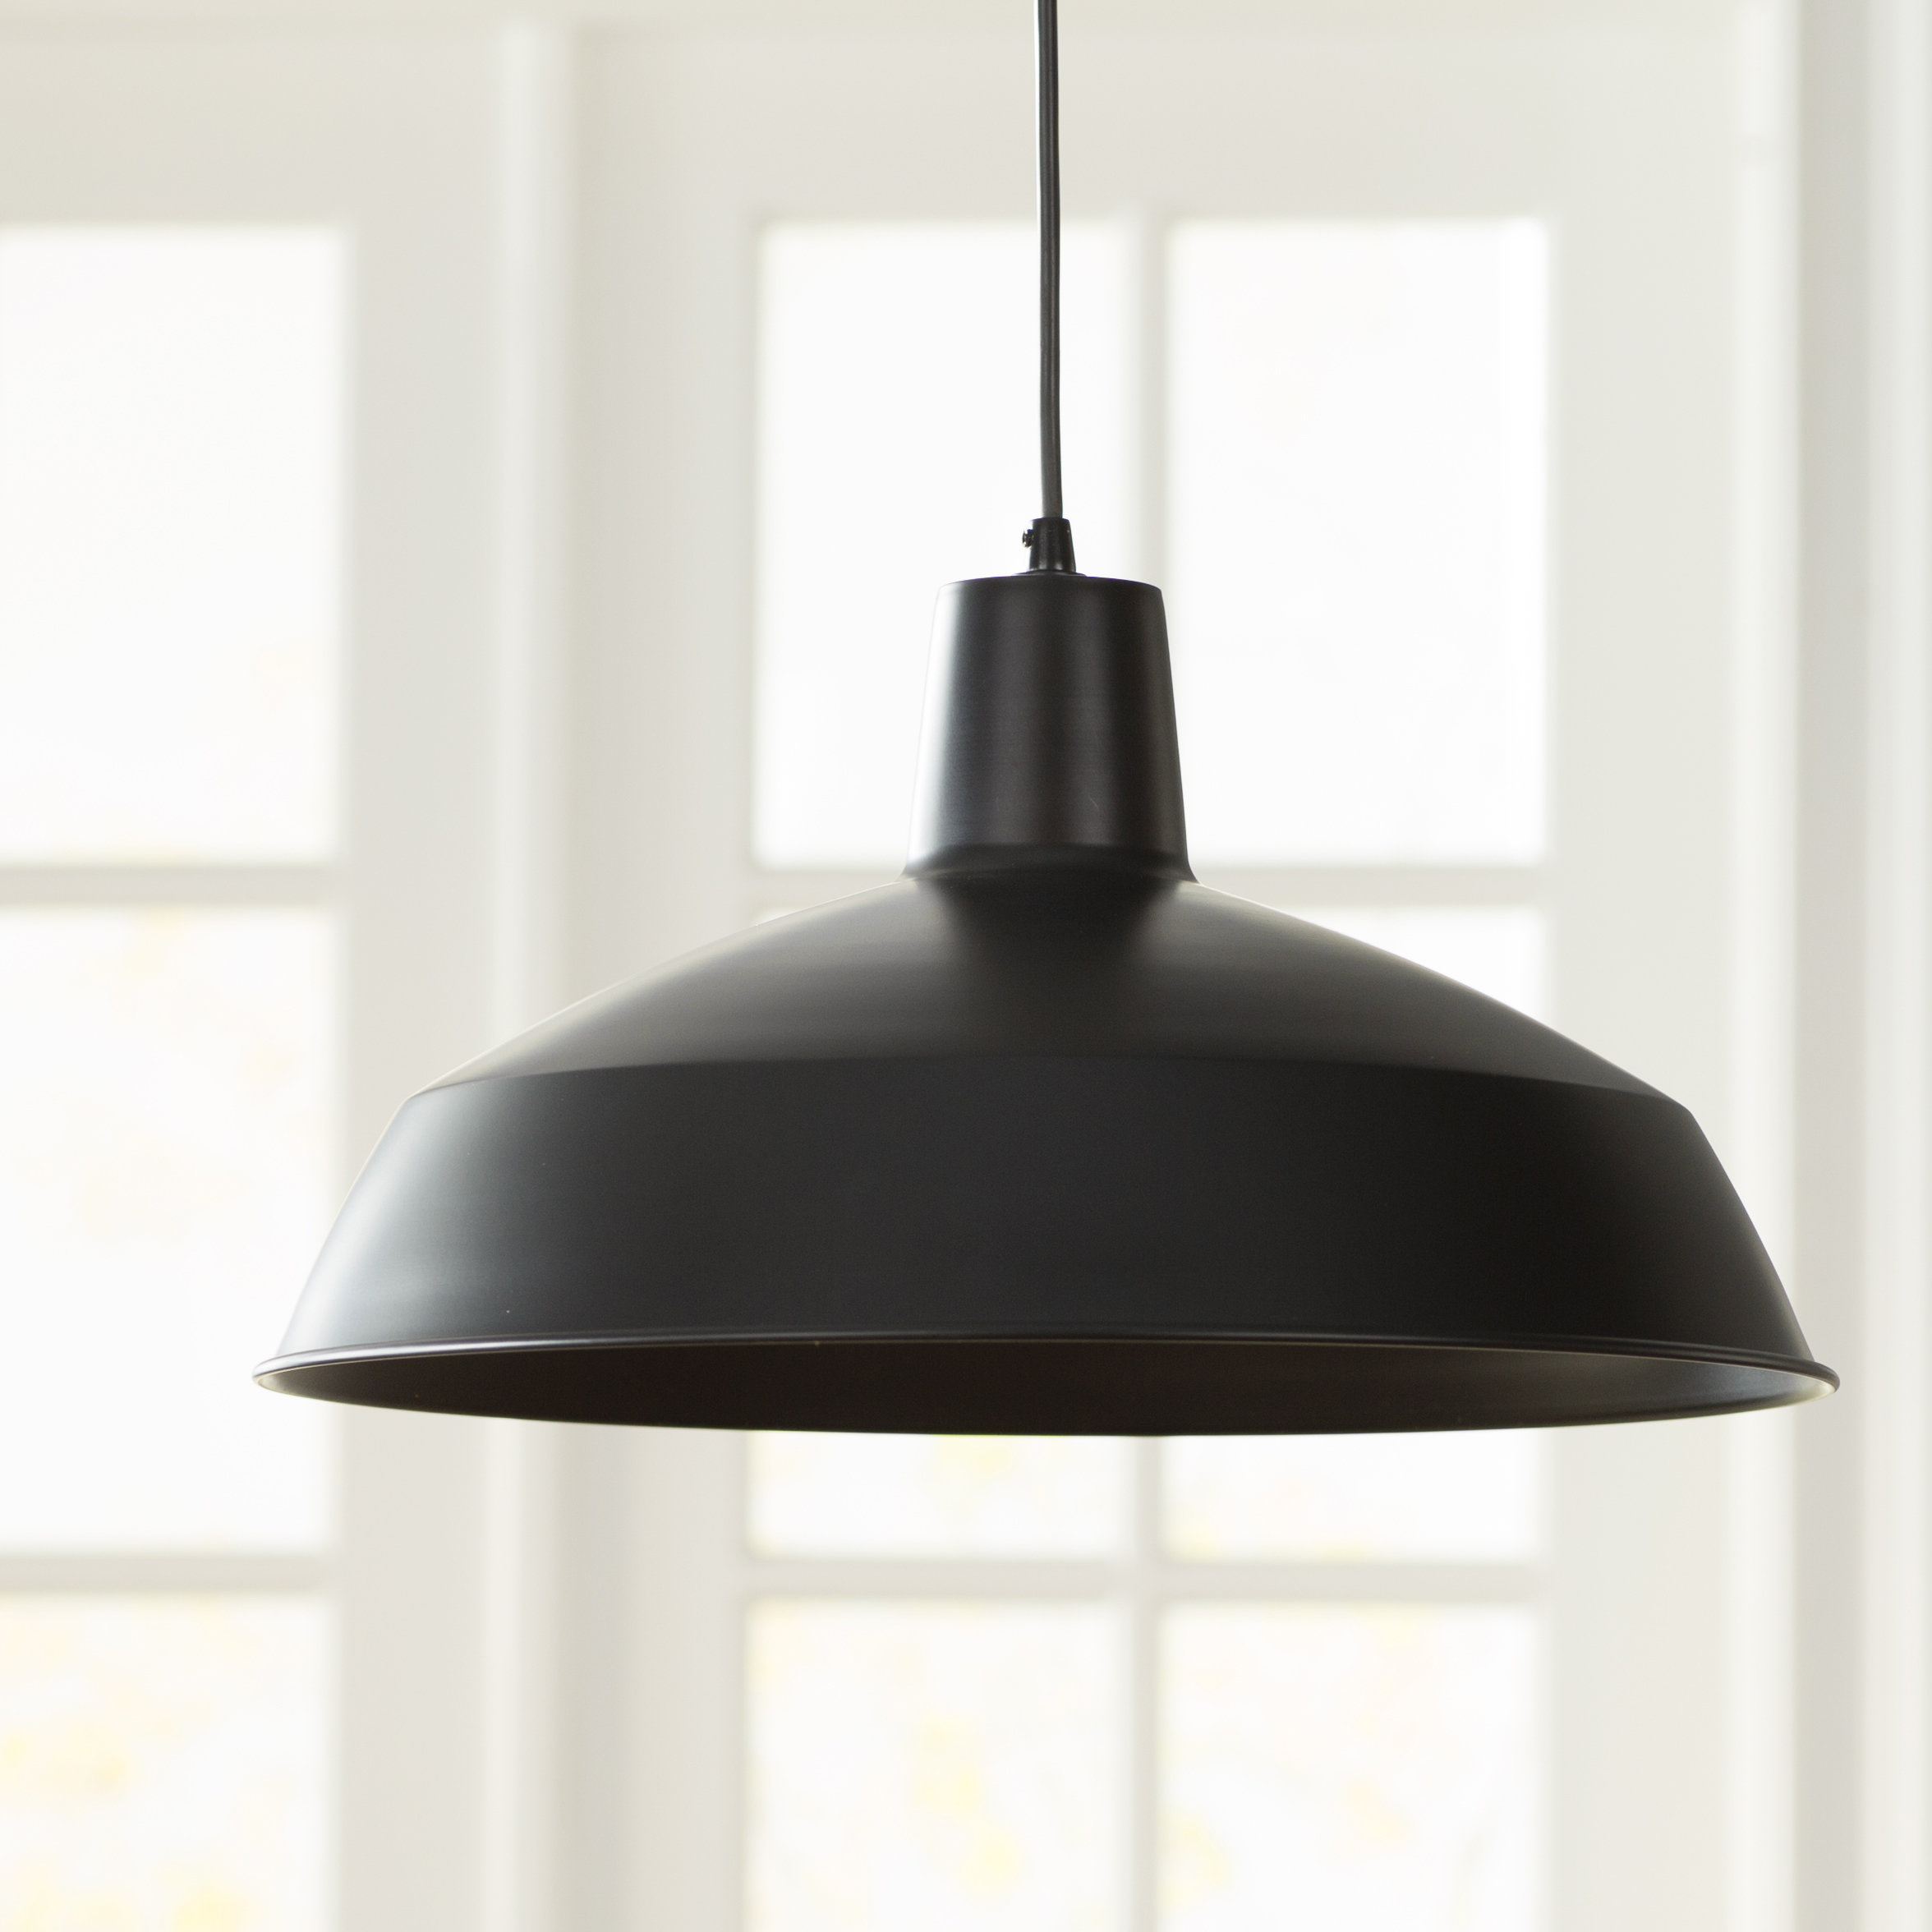 2019 Adrianna 1 Light Single Dome Pendant Within Vintage Edison 1 Light Bowl Pendants (View 18 of 25)